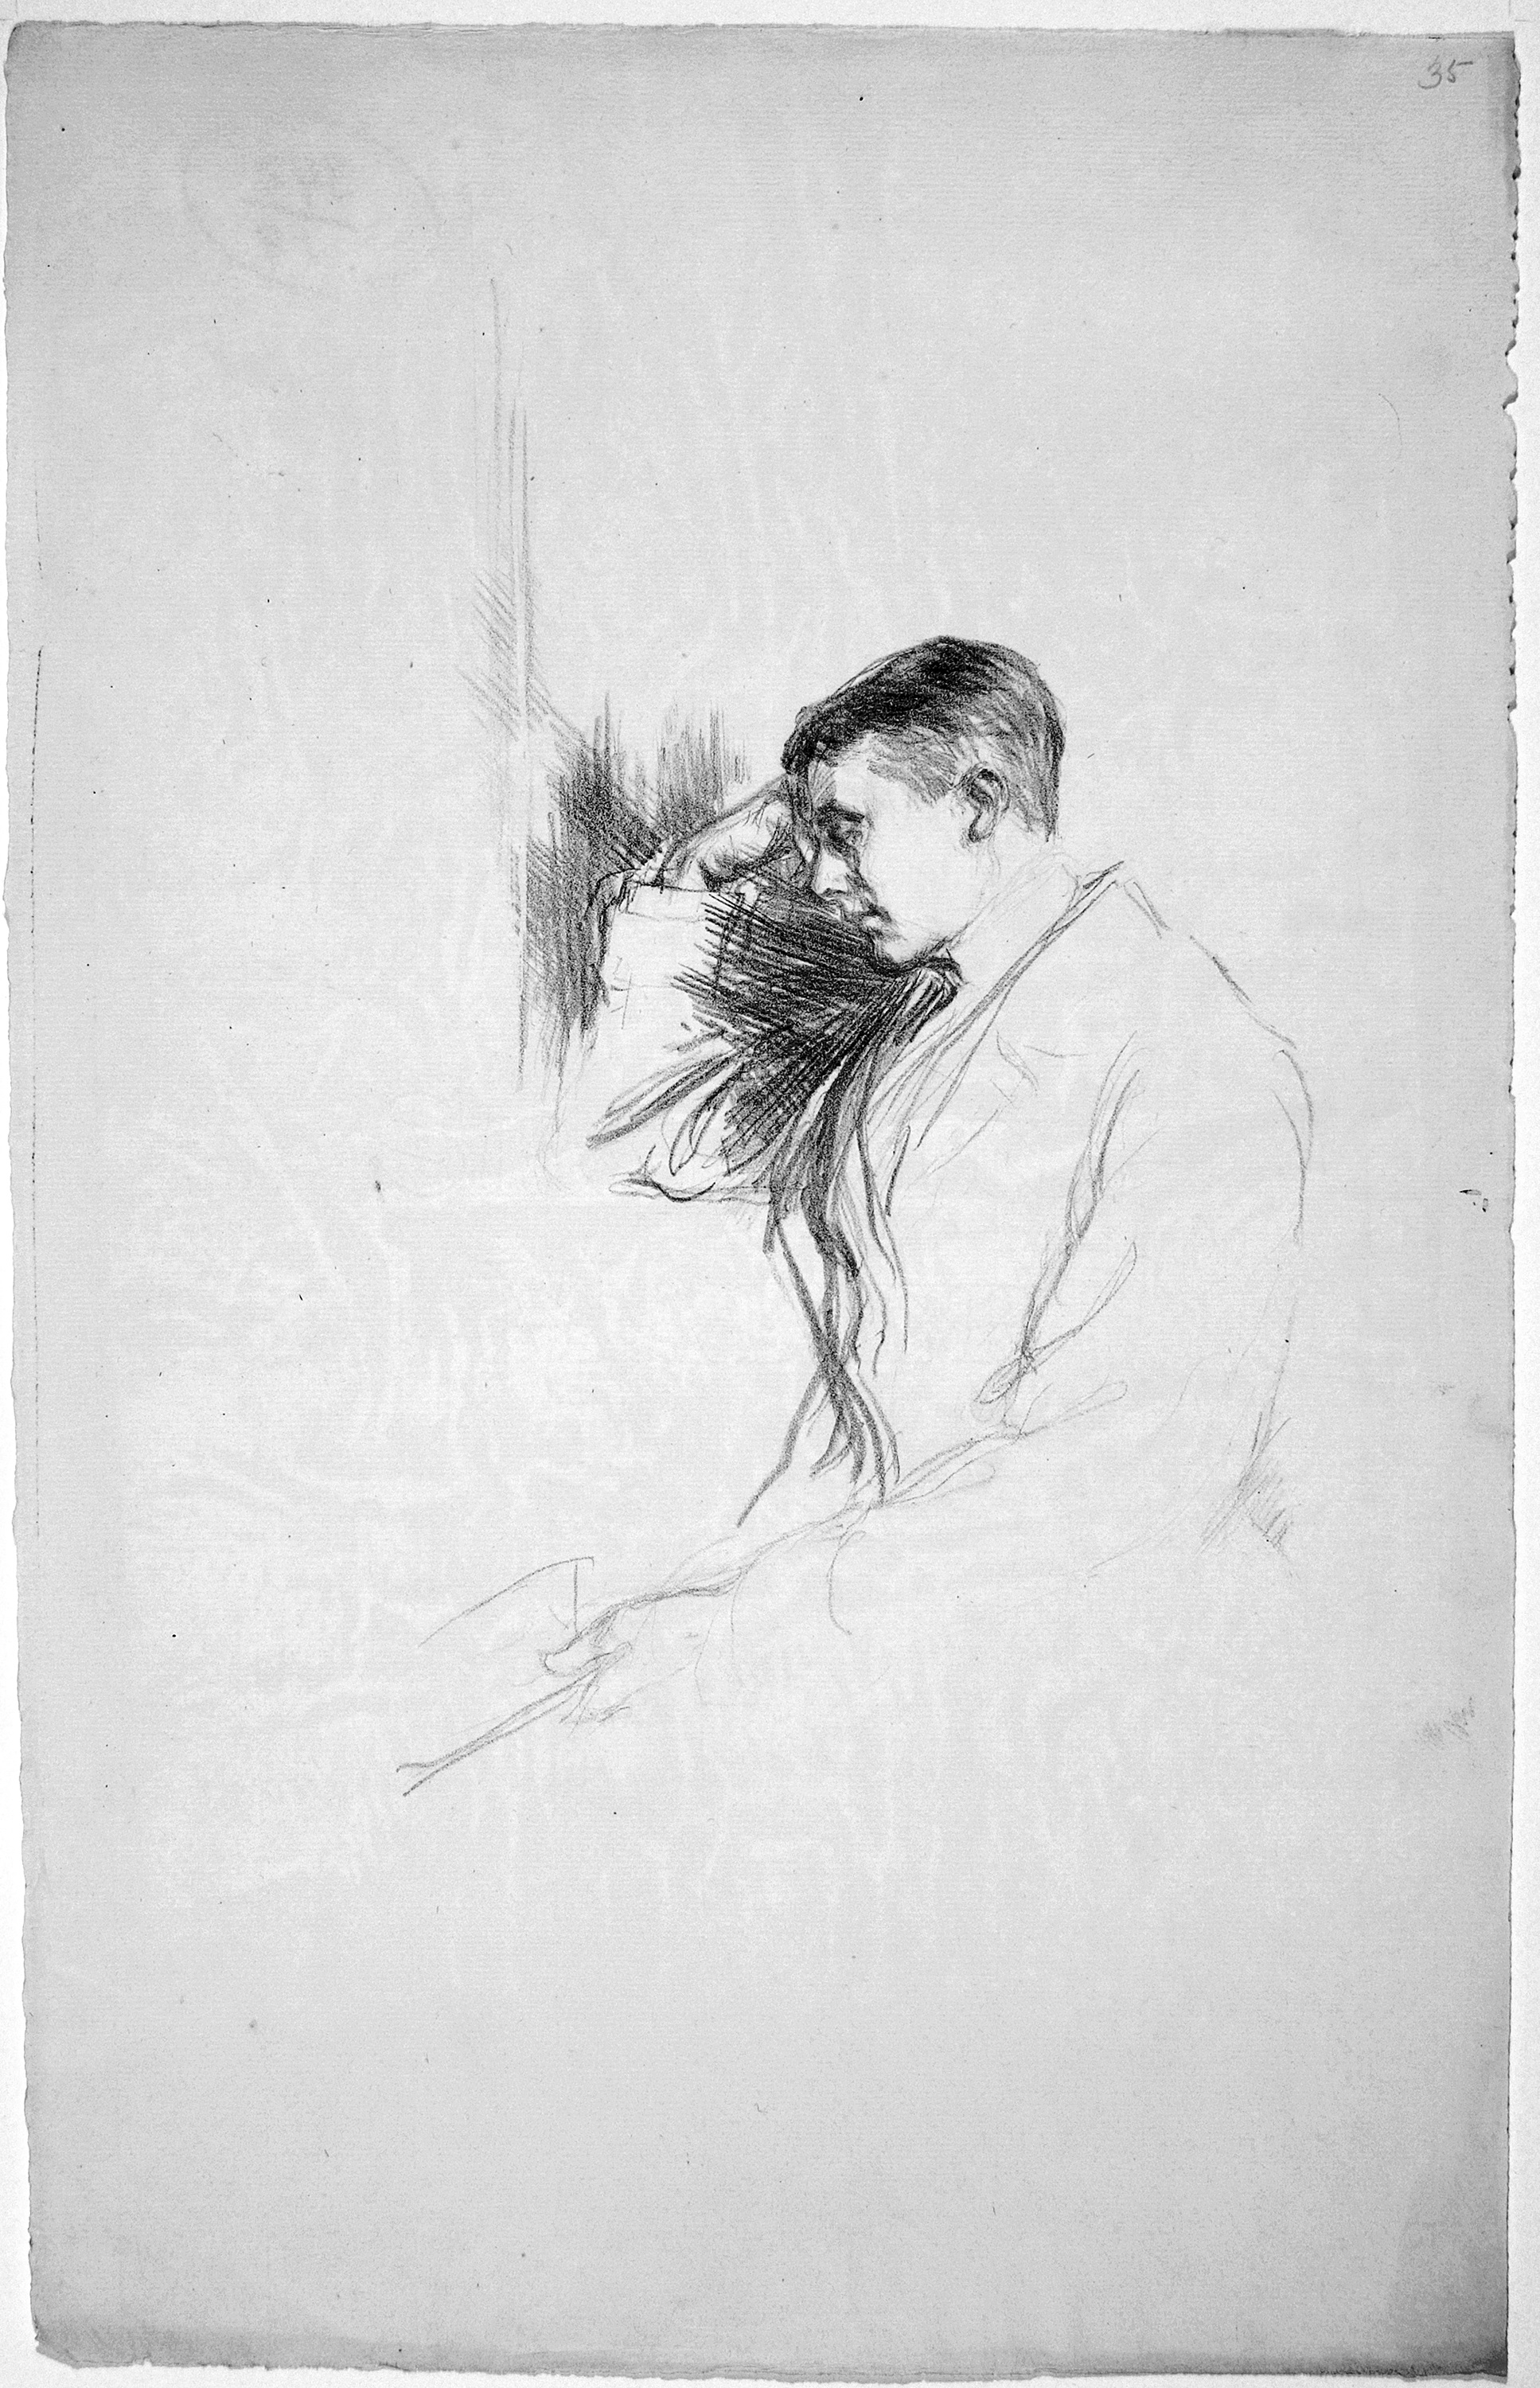 This image is a drawing of John Gray, his head and right arm are detailed, and the rest of the image is loosely sketched, fading away further down the page. He is leaning on his right elbow, perhaps by a window, his fist to his forehead and eyes shut. In his left hand is a book, loosely held. Straight dark lines fill the space between his head and arm, contrasting with the rest of the sketch. His hair is combed to the side, it is dark on top and grey on the bottom. He is wearing a heavy overcoat, white shirt sleeves are visible.